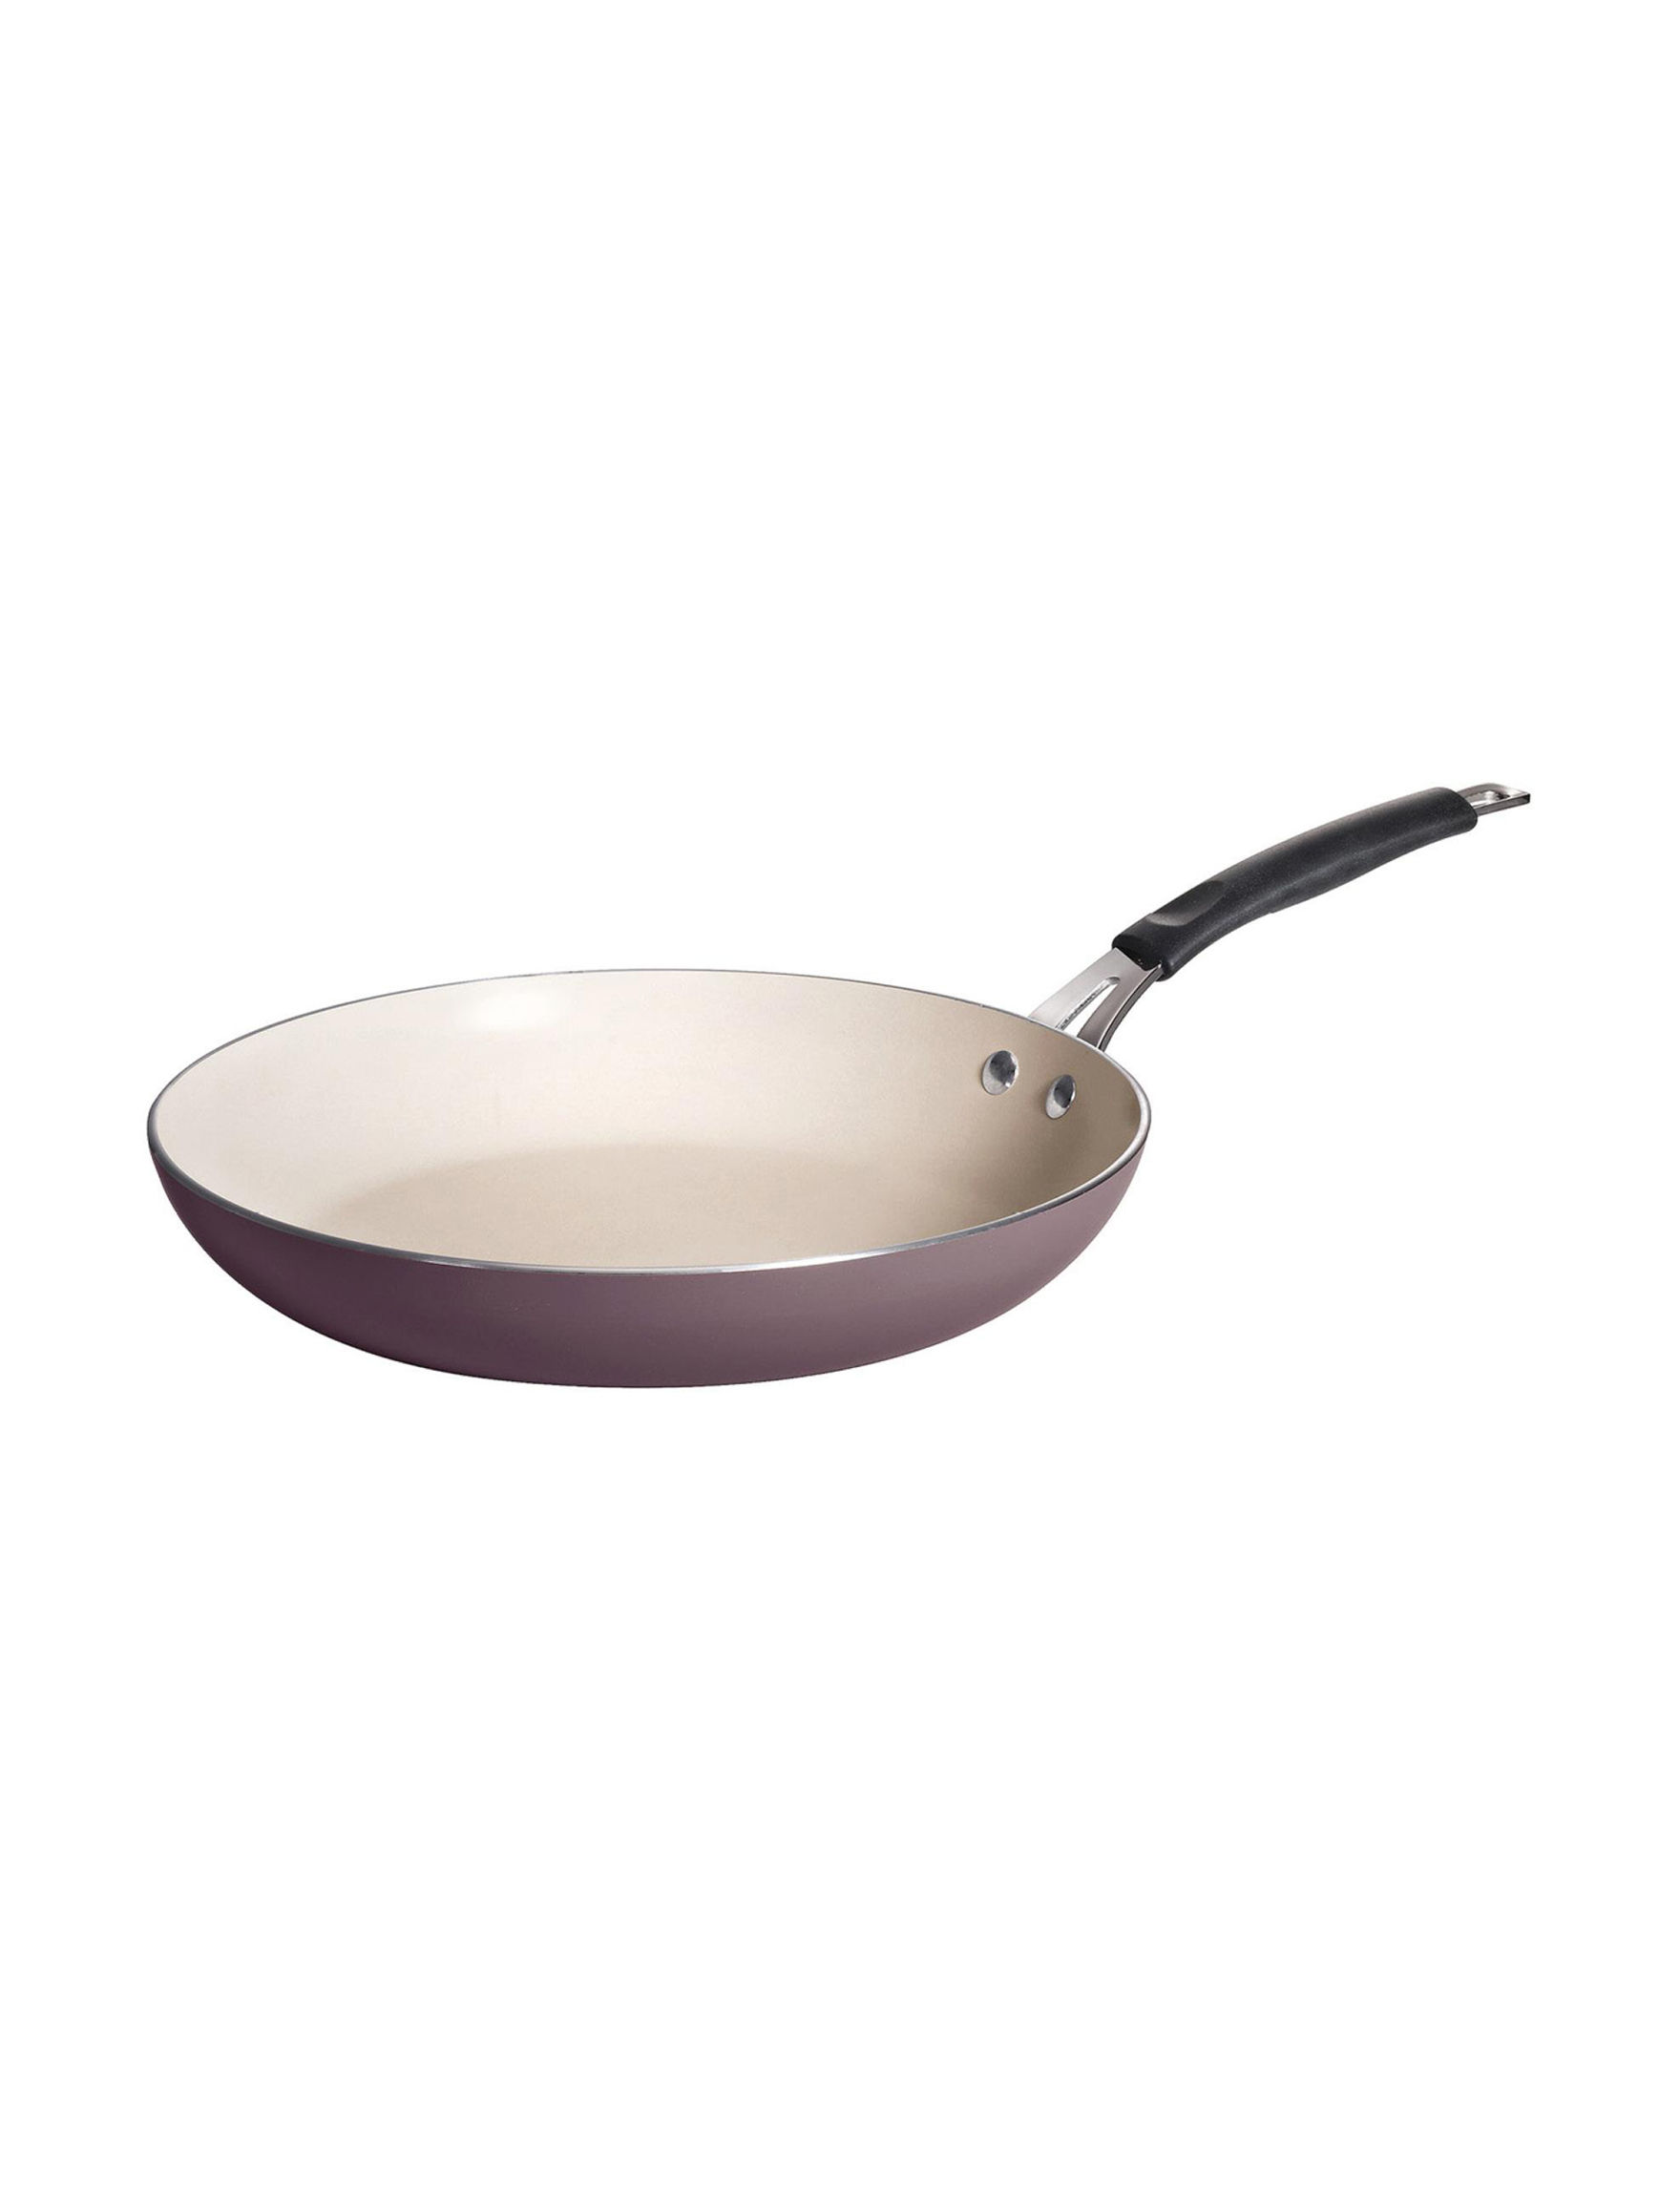 Tramontina Plum Frying Pans & Skillets Cookware